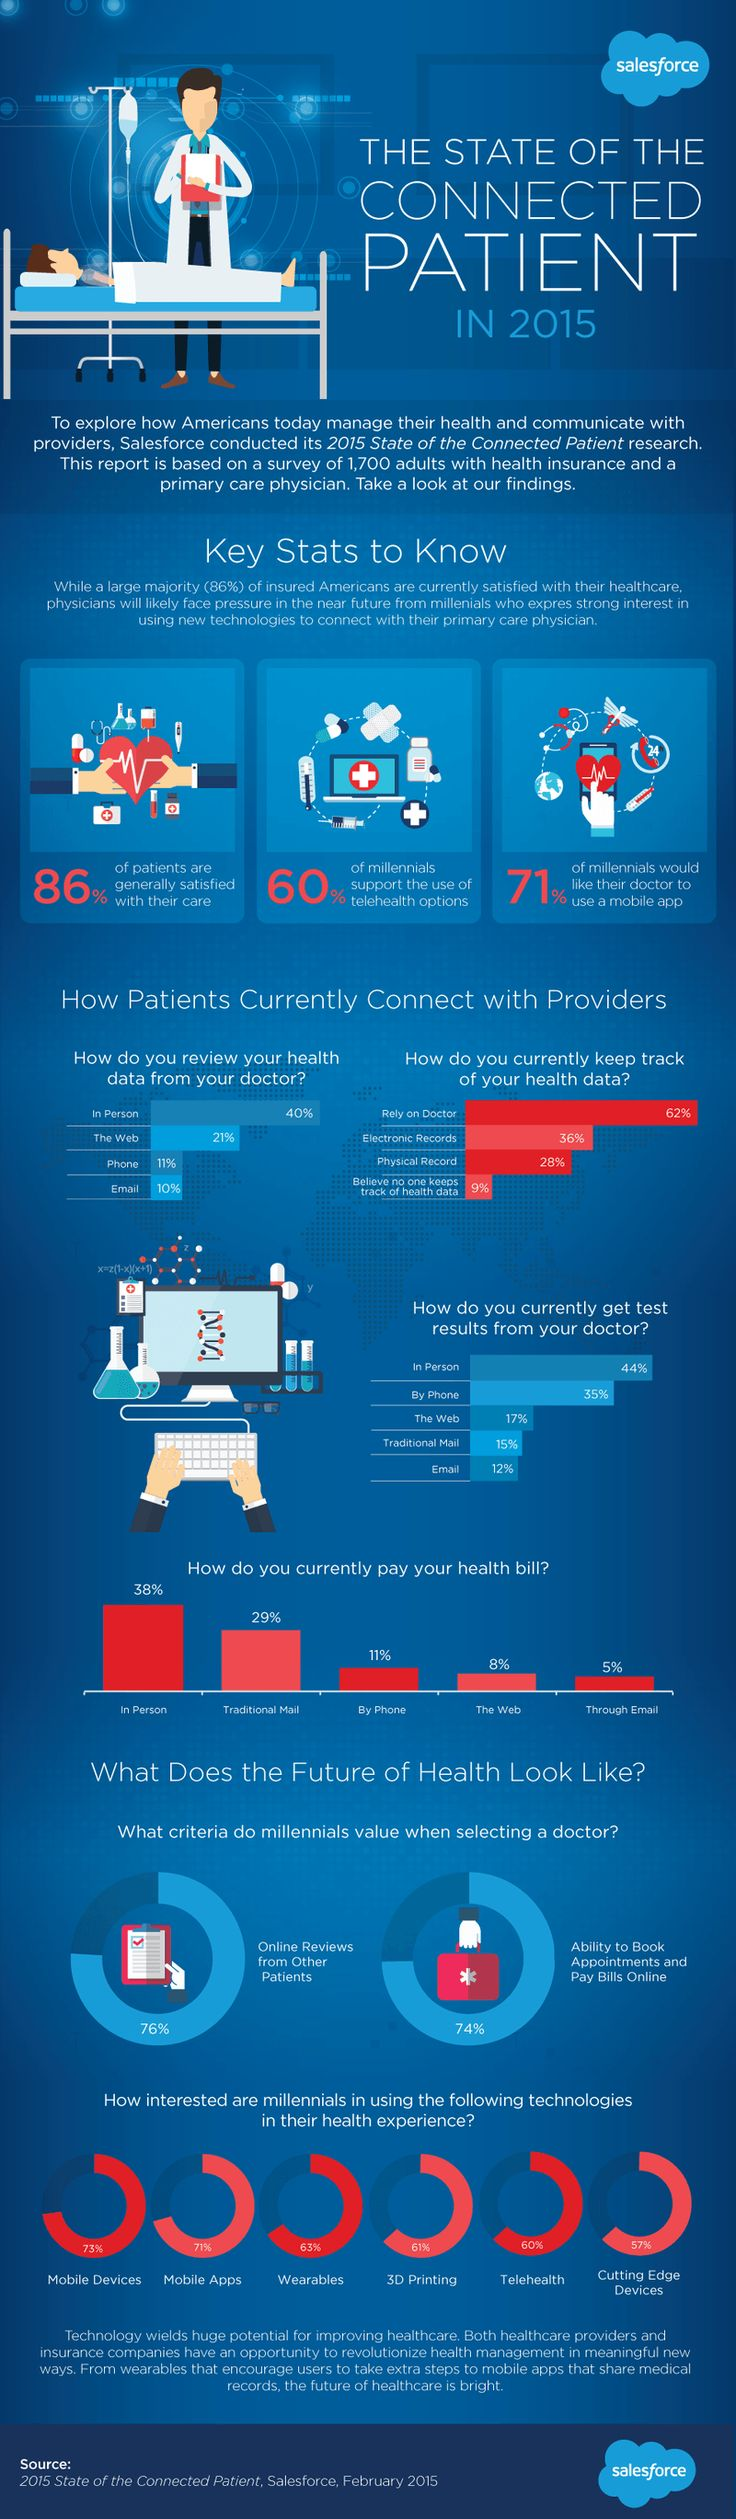 The State of the Connected Patient report examines how patients are currently connecting with their providers, as well as future technology requests.